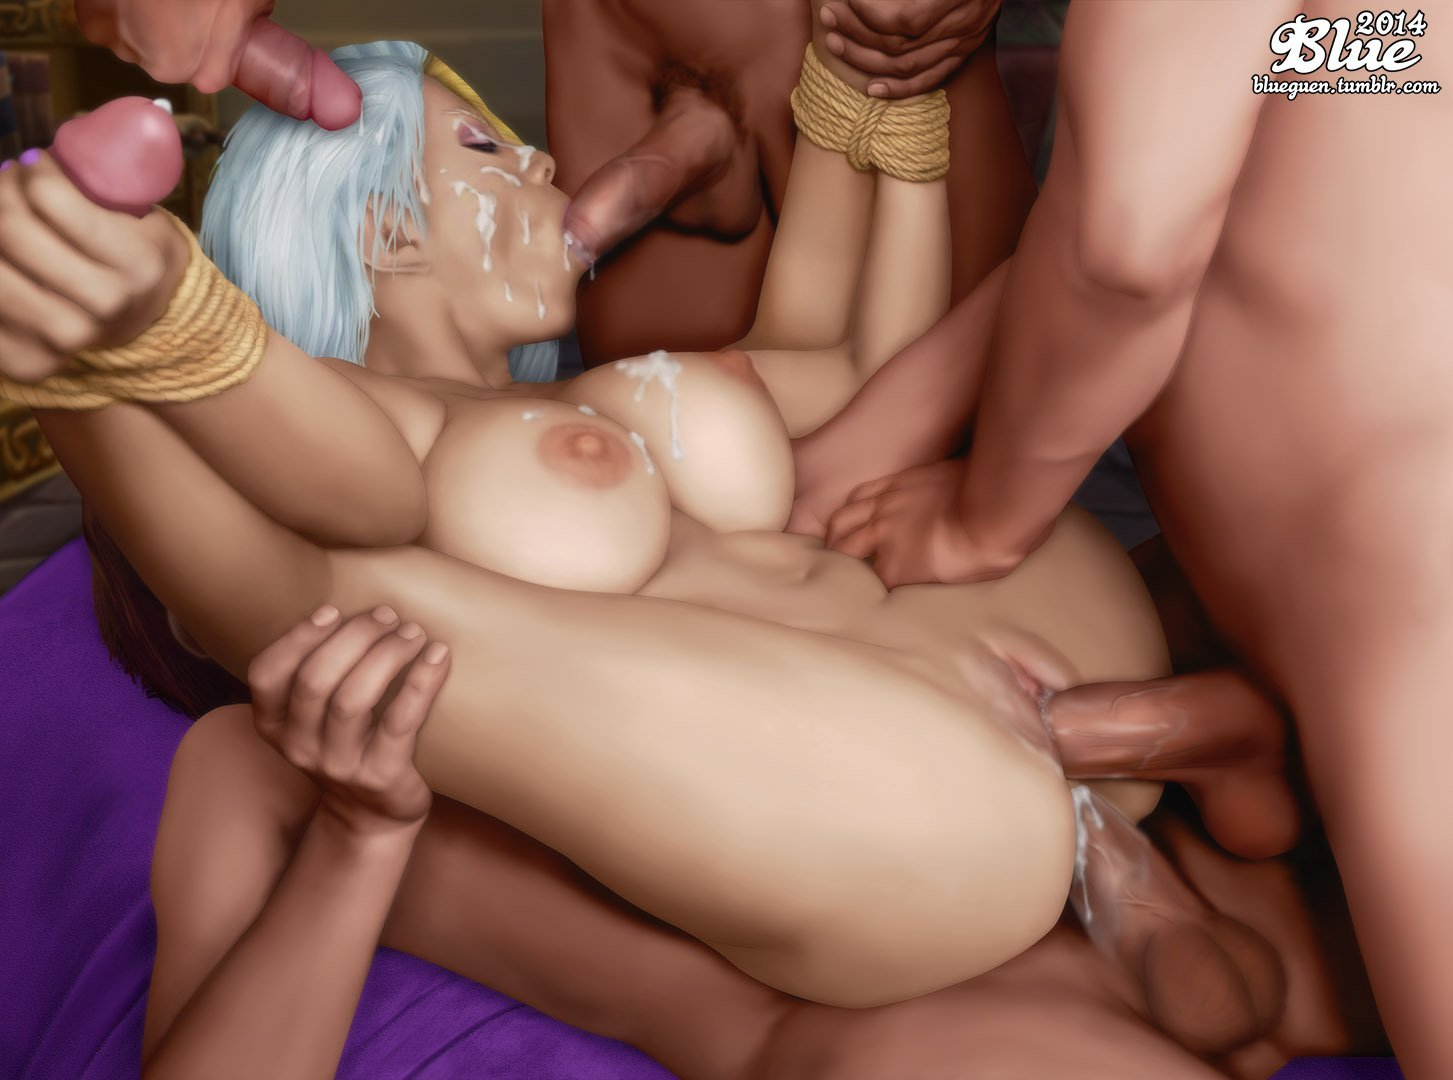 Jainas xxx video d porno pics